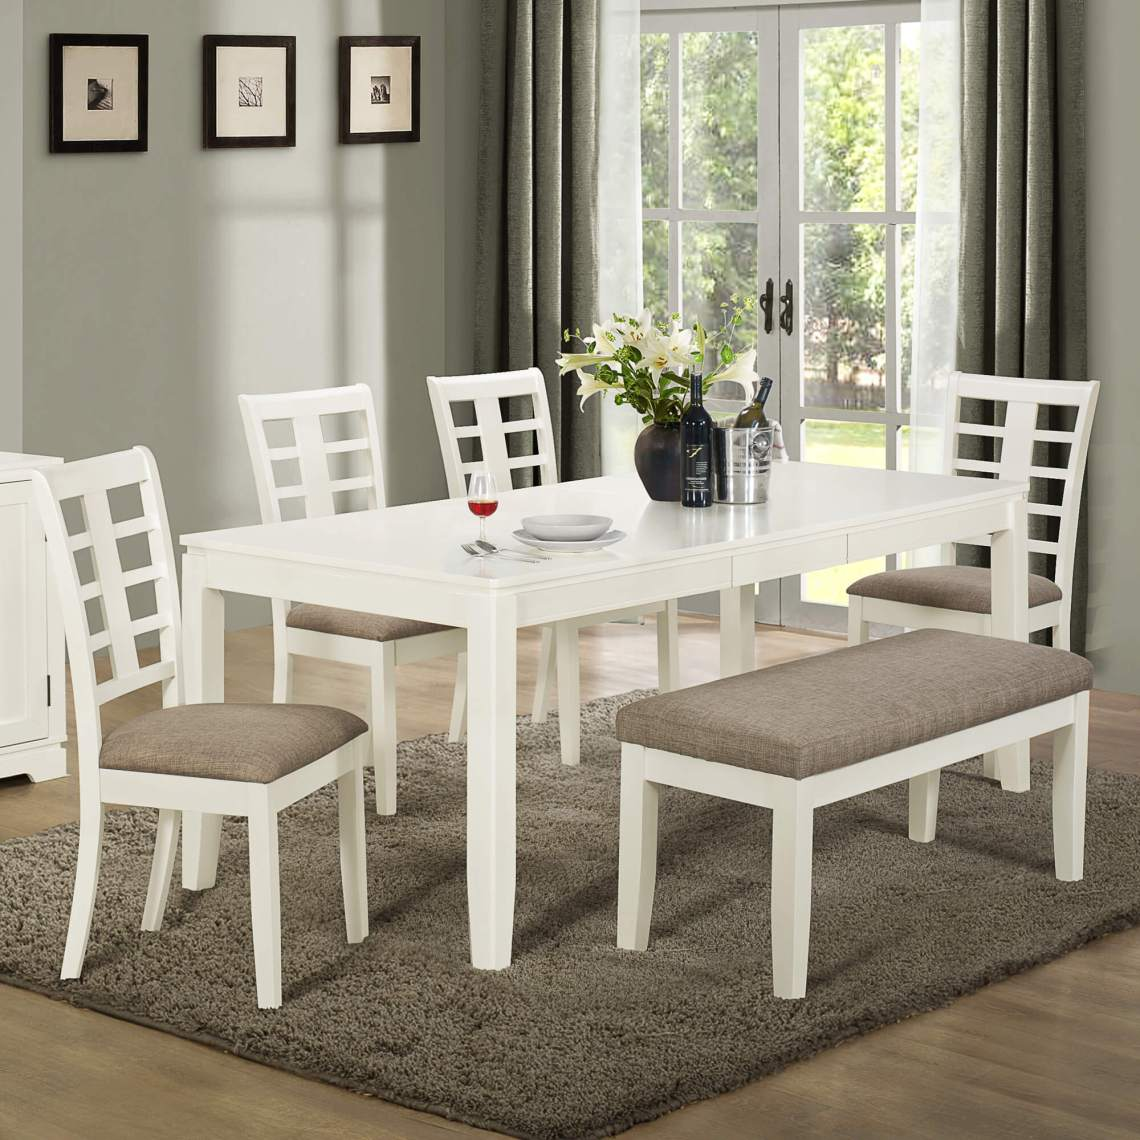 Image Result For Dining Room Table Sets